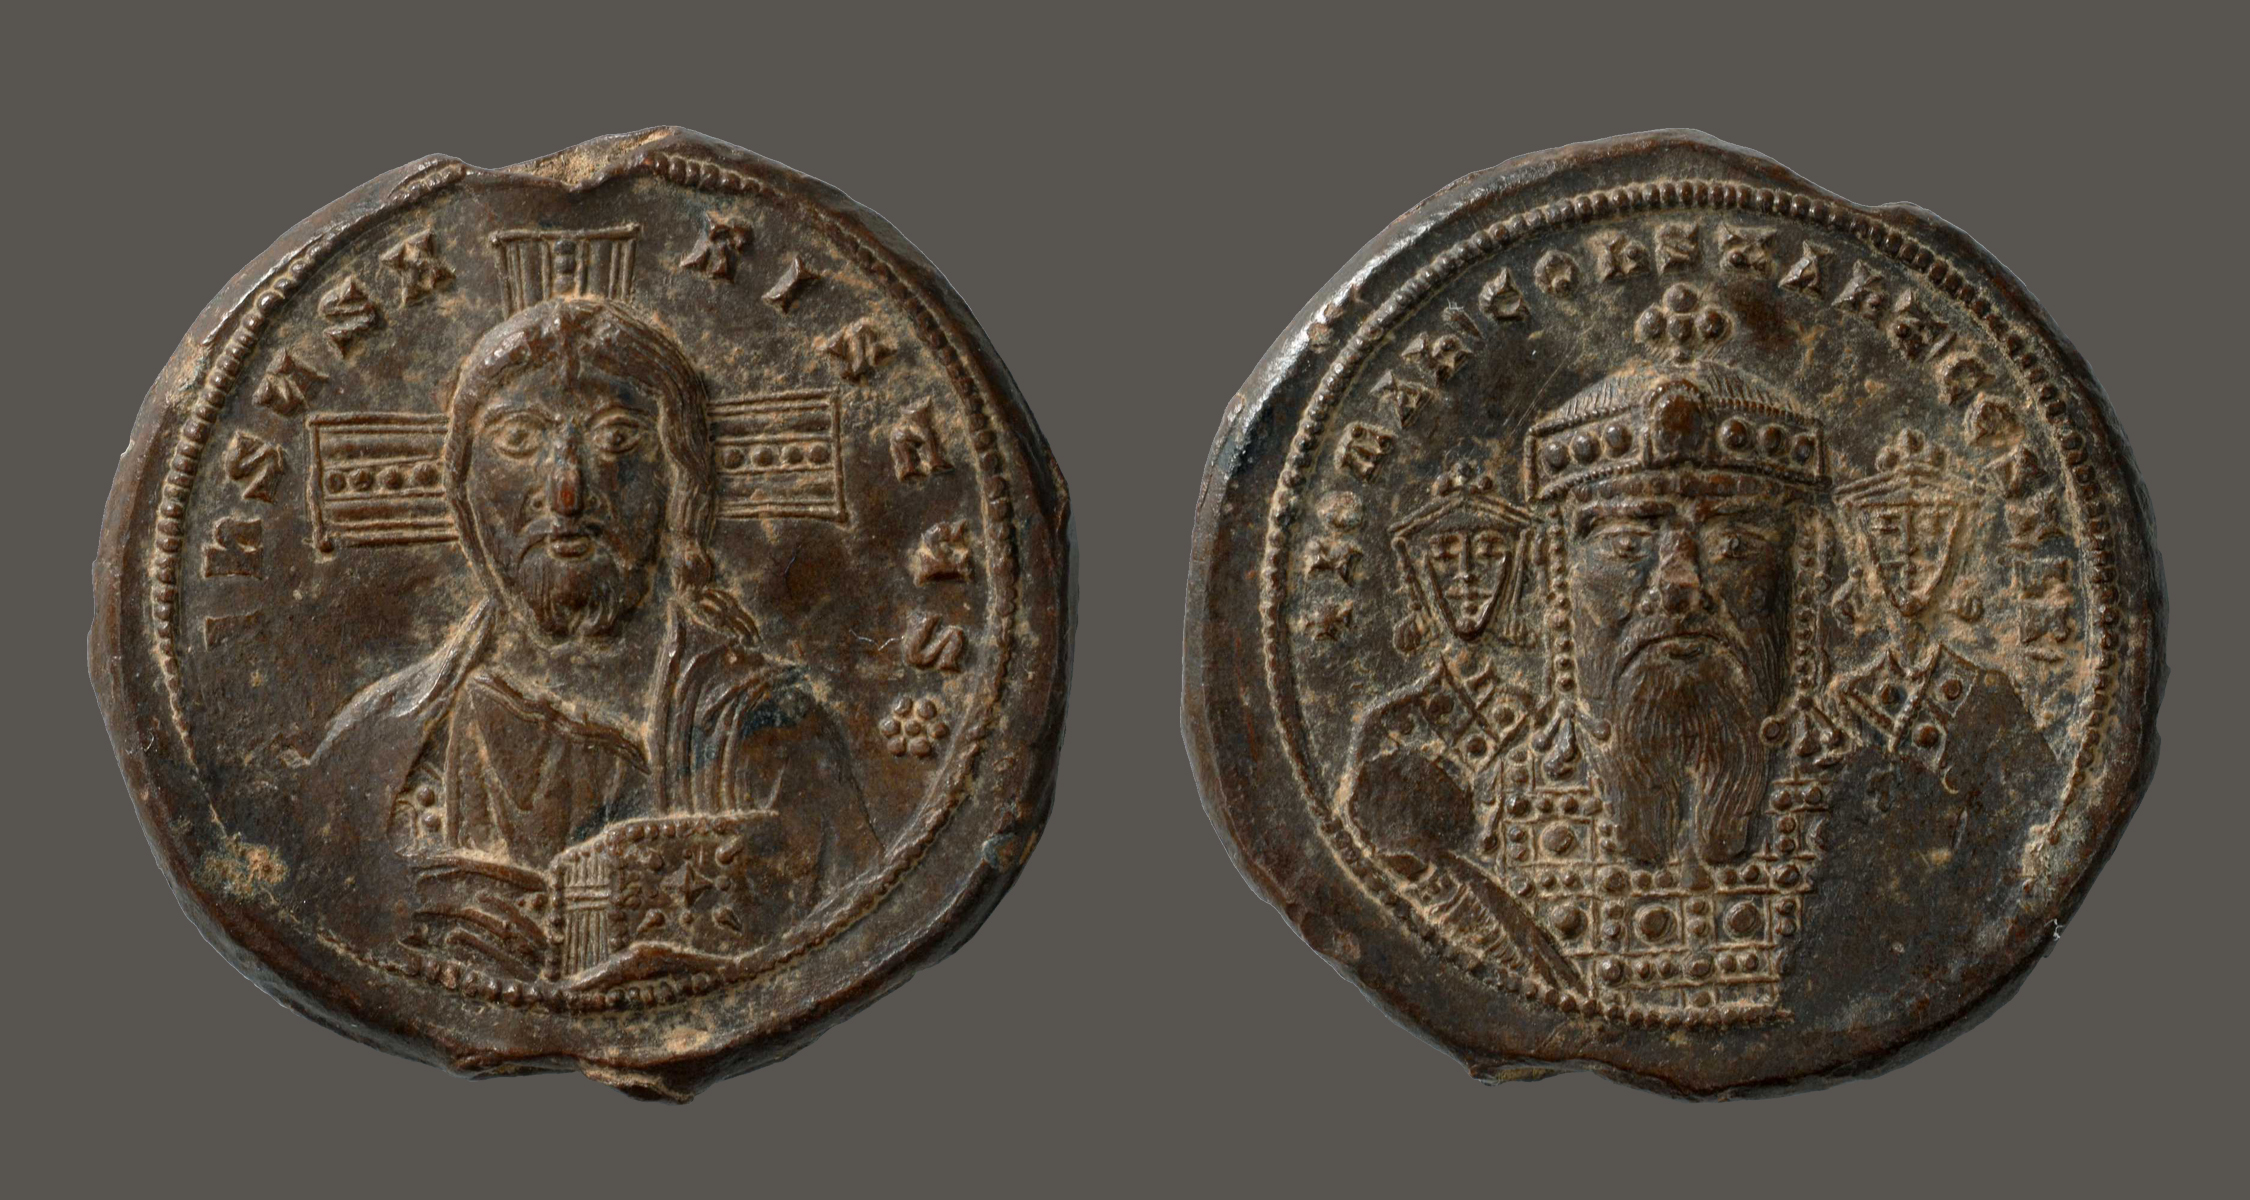 Diplomatic Ancient Byzantine Bronze Constantine V Follis Coin 8th Century Ad Coins & Paper Money Coins: Ancient